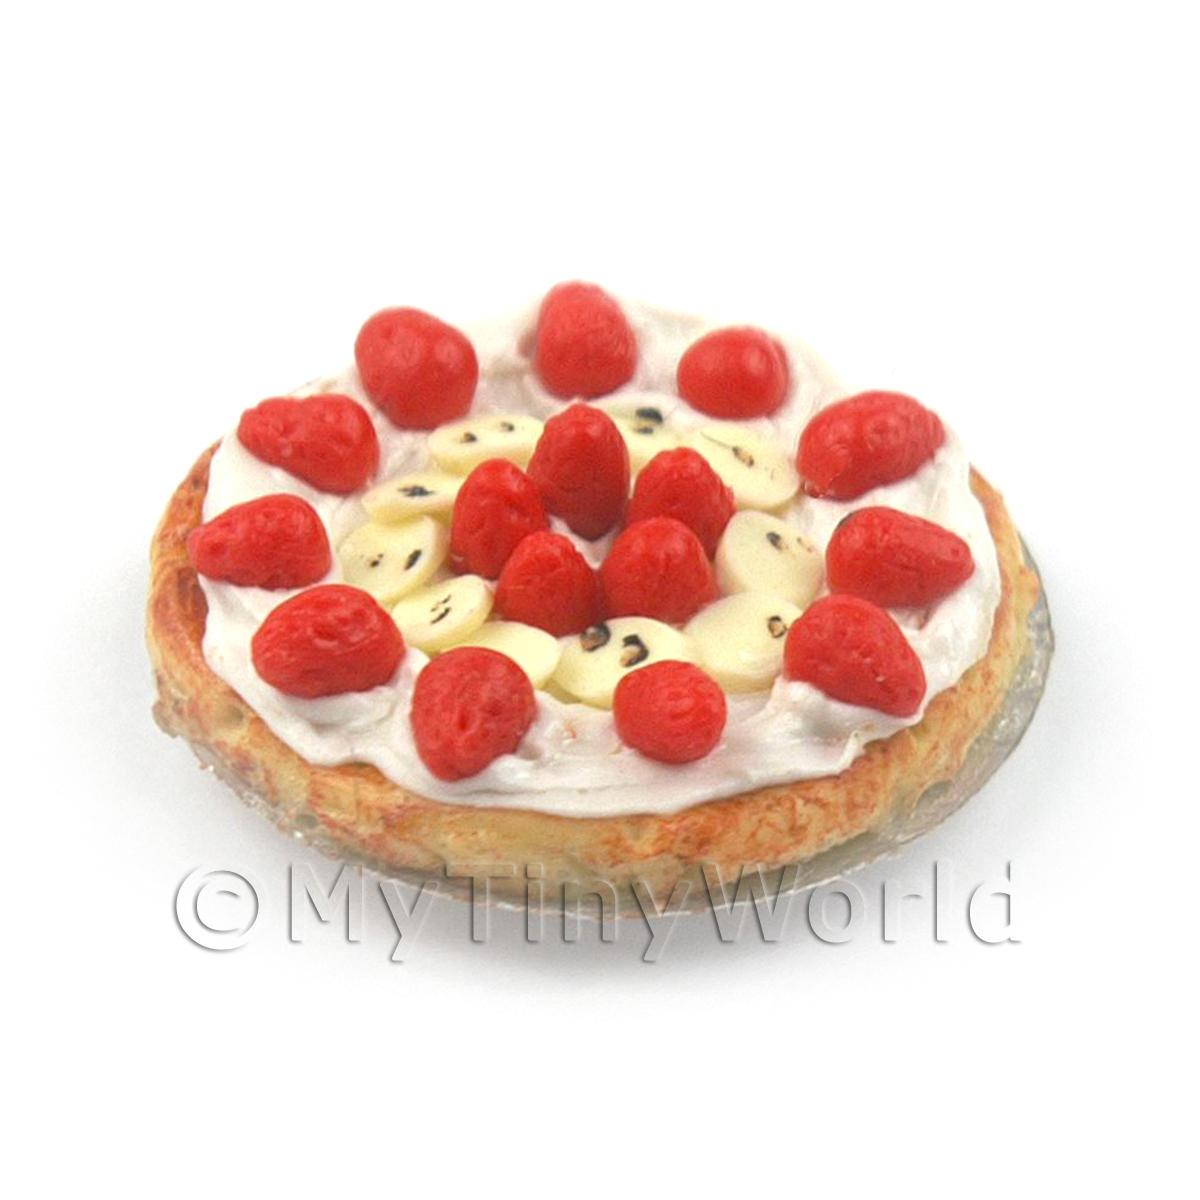 Dolls House Miniature Banana Strawberry Cream Filled Tart